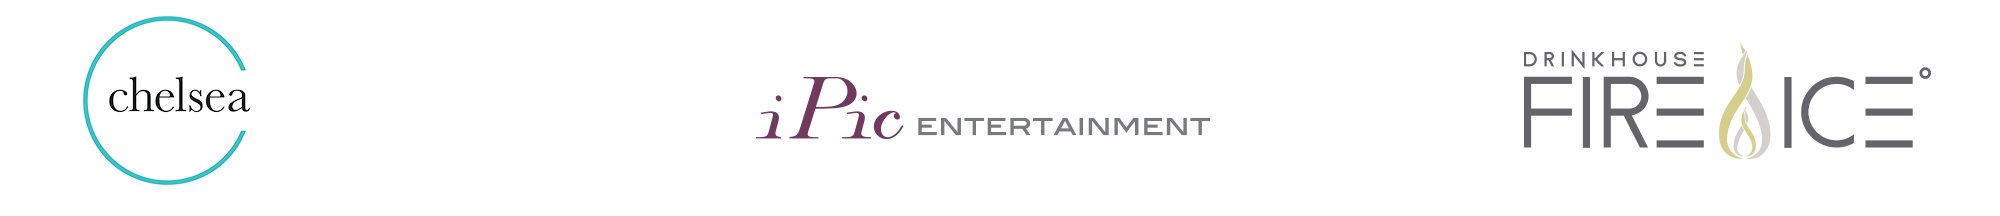 Client logos large entertainment batch 2